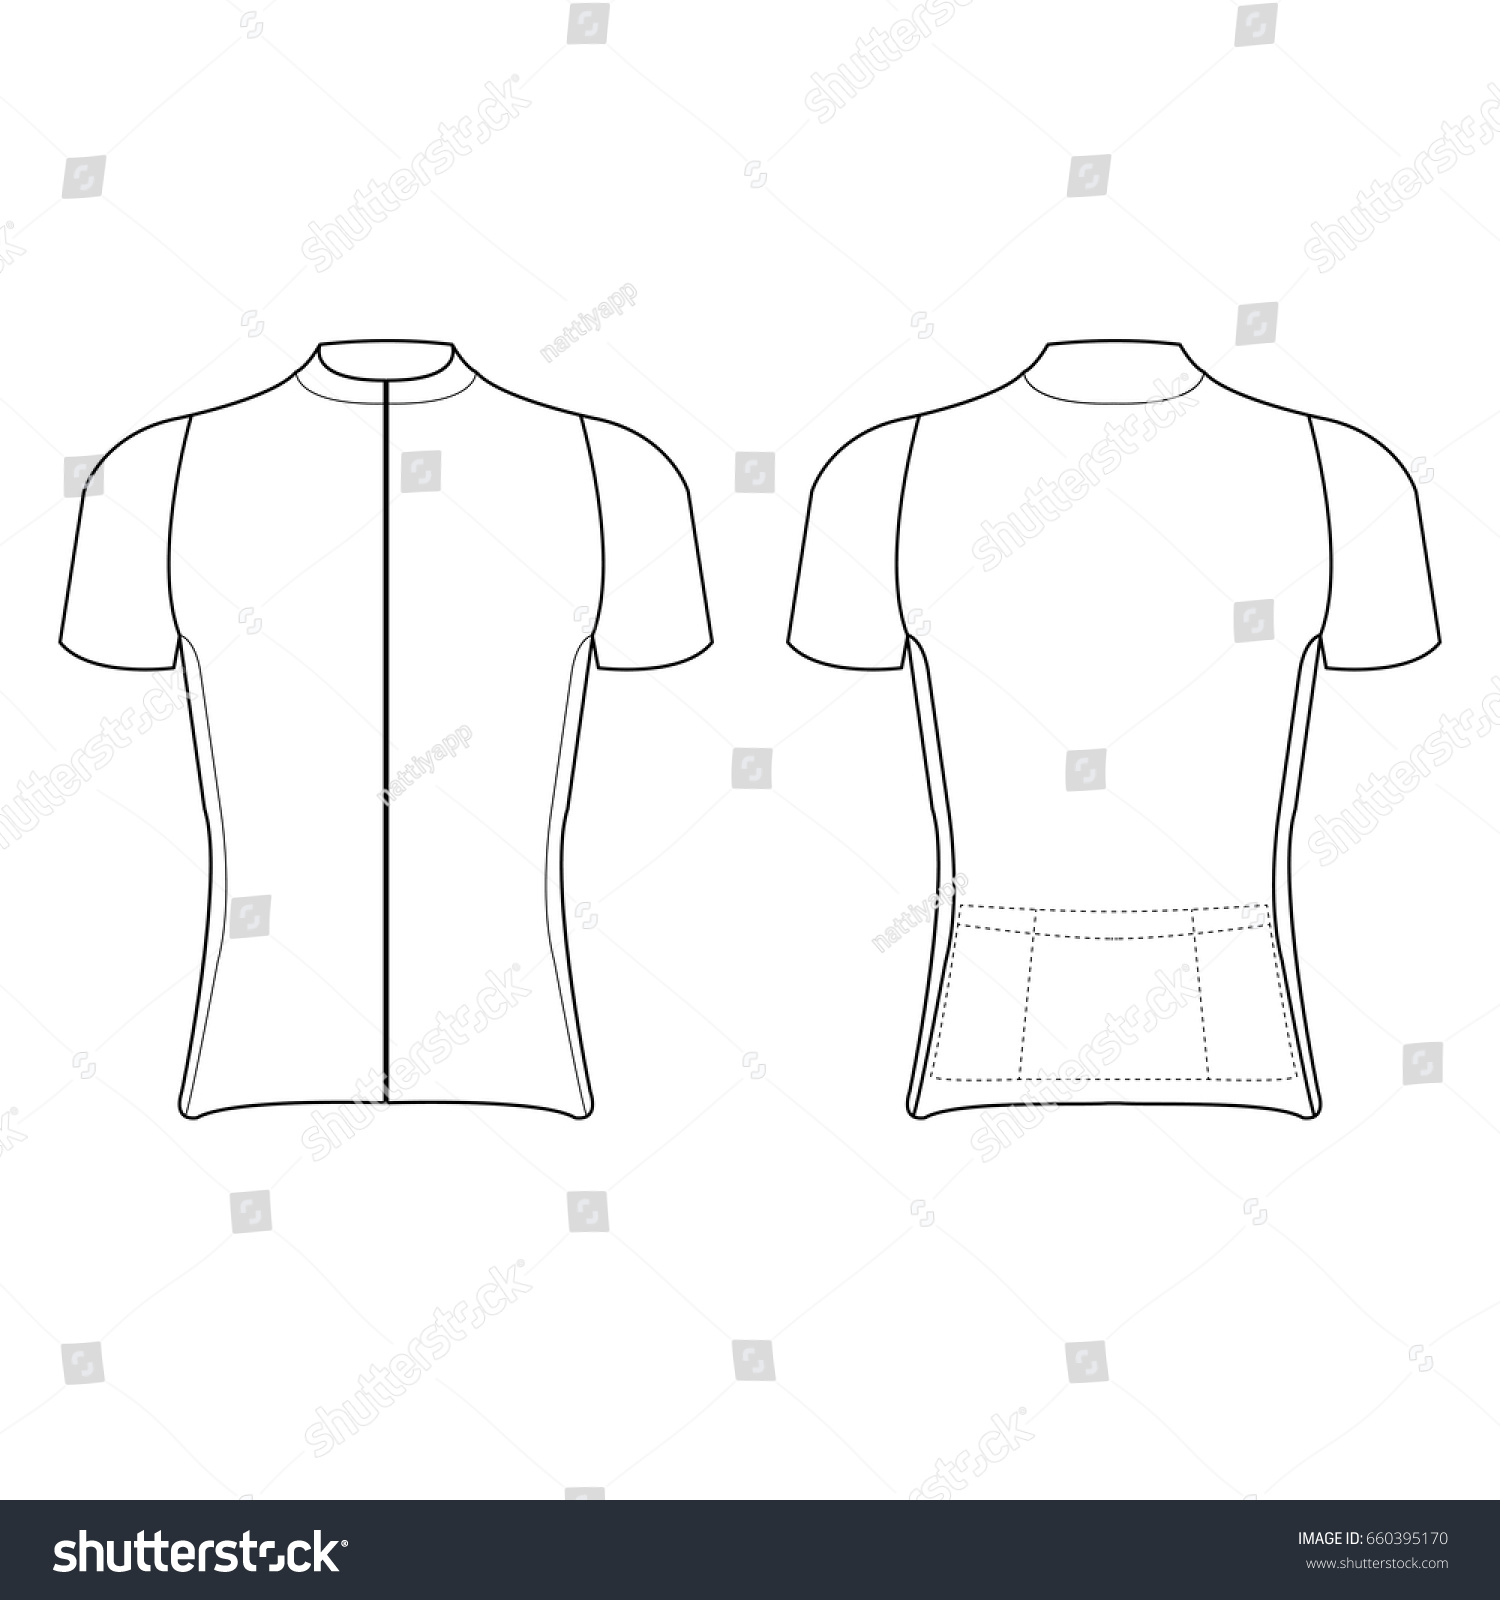 custom cycling jerseys online designer design your own cycling 2014 cornwall triathlon soccer. Black Bedroom Furniture Sets. Home Design Ideas